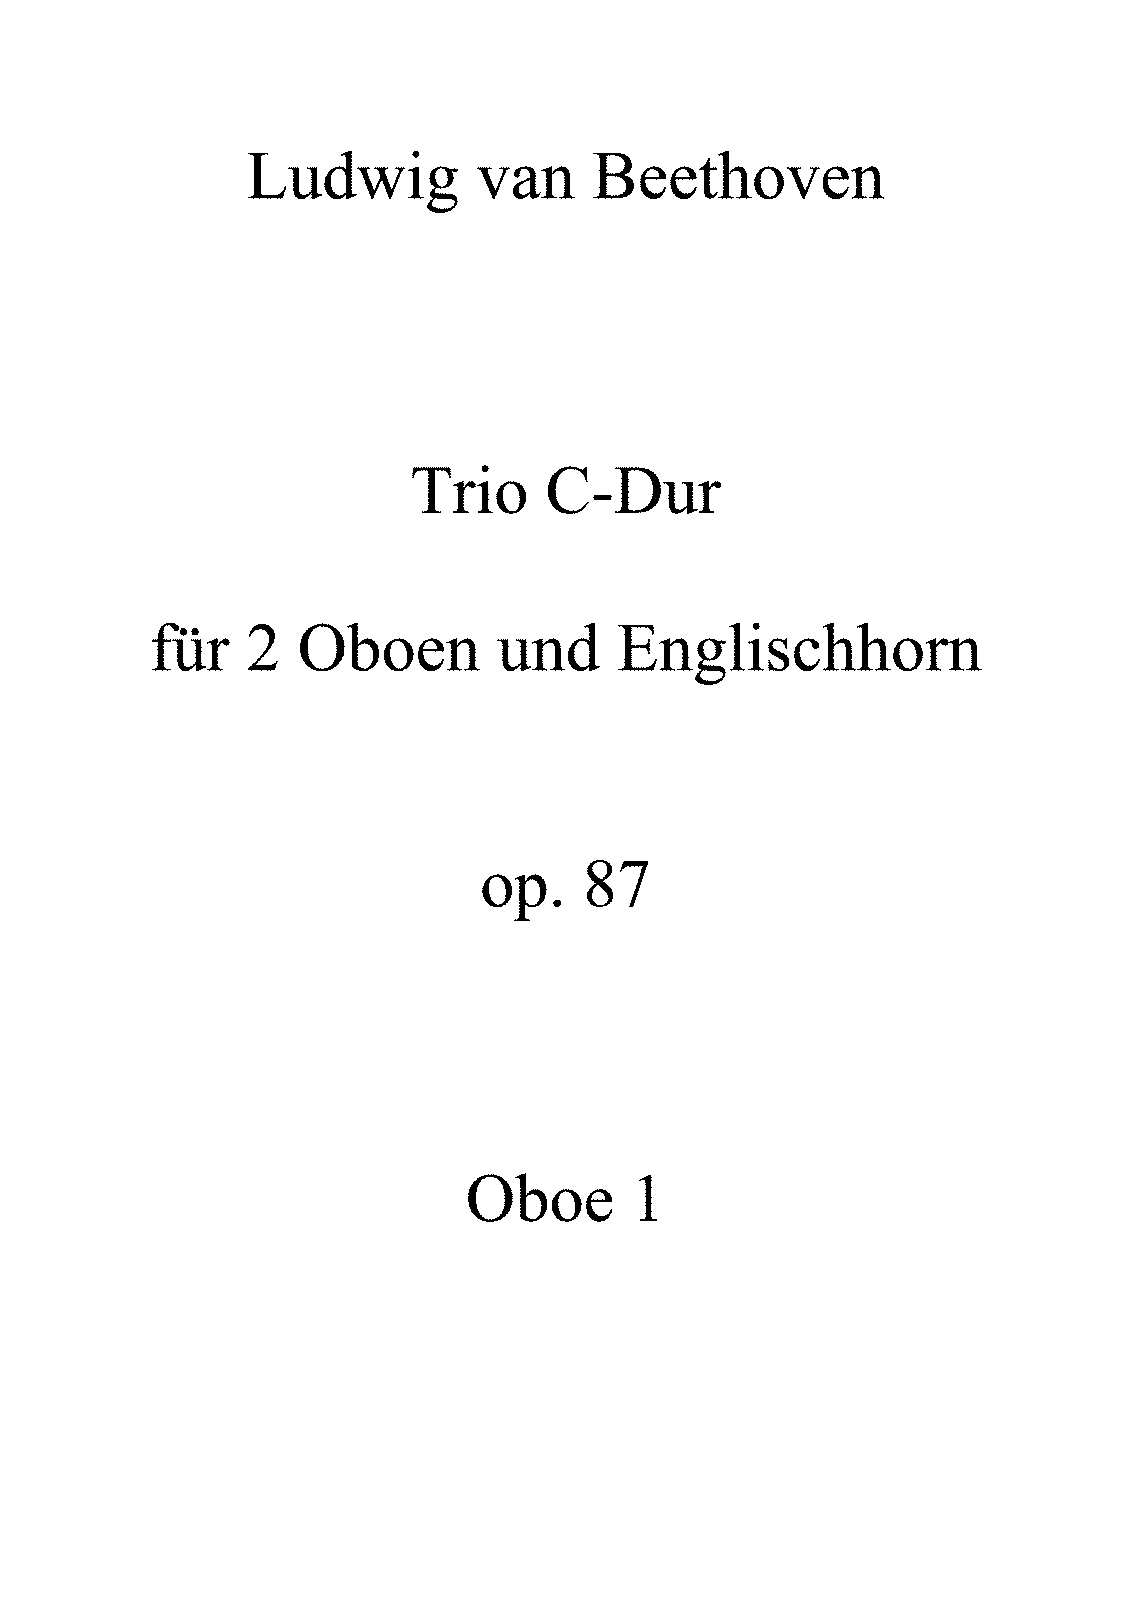 PMLP13775-Beethoven Trio Op.87 Parts.pdf